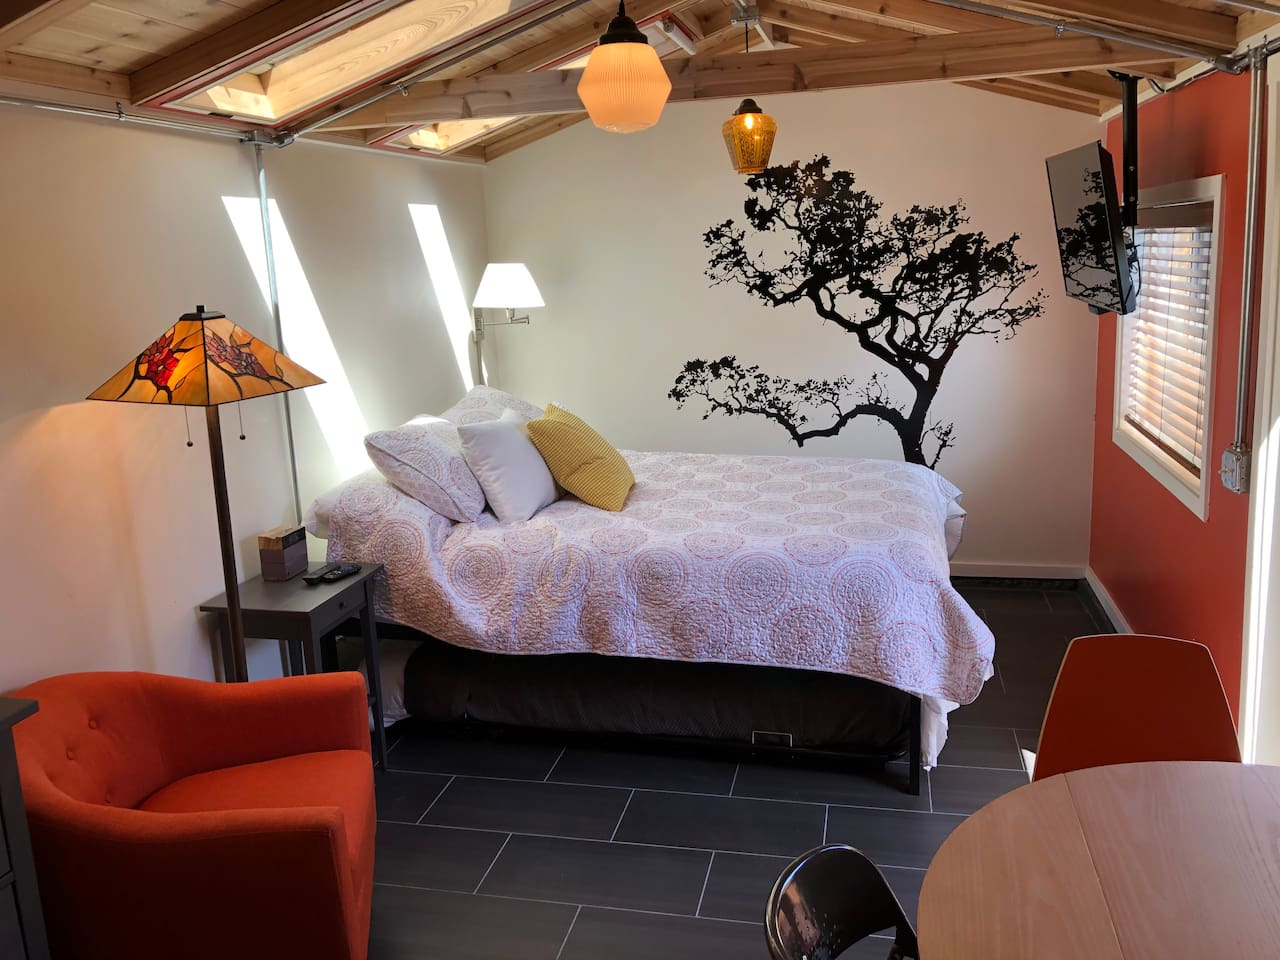 Skylights with shades, super comfy bed with mounted TV